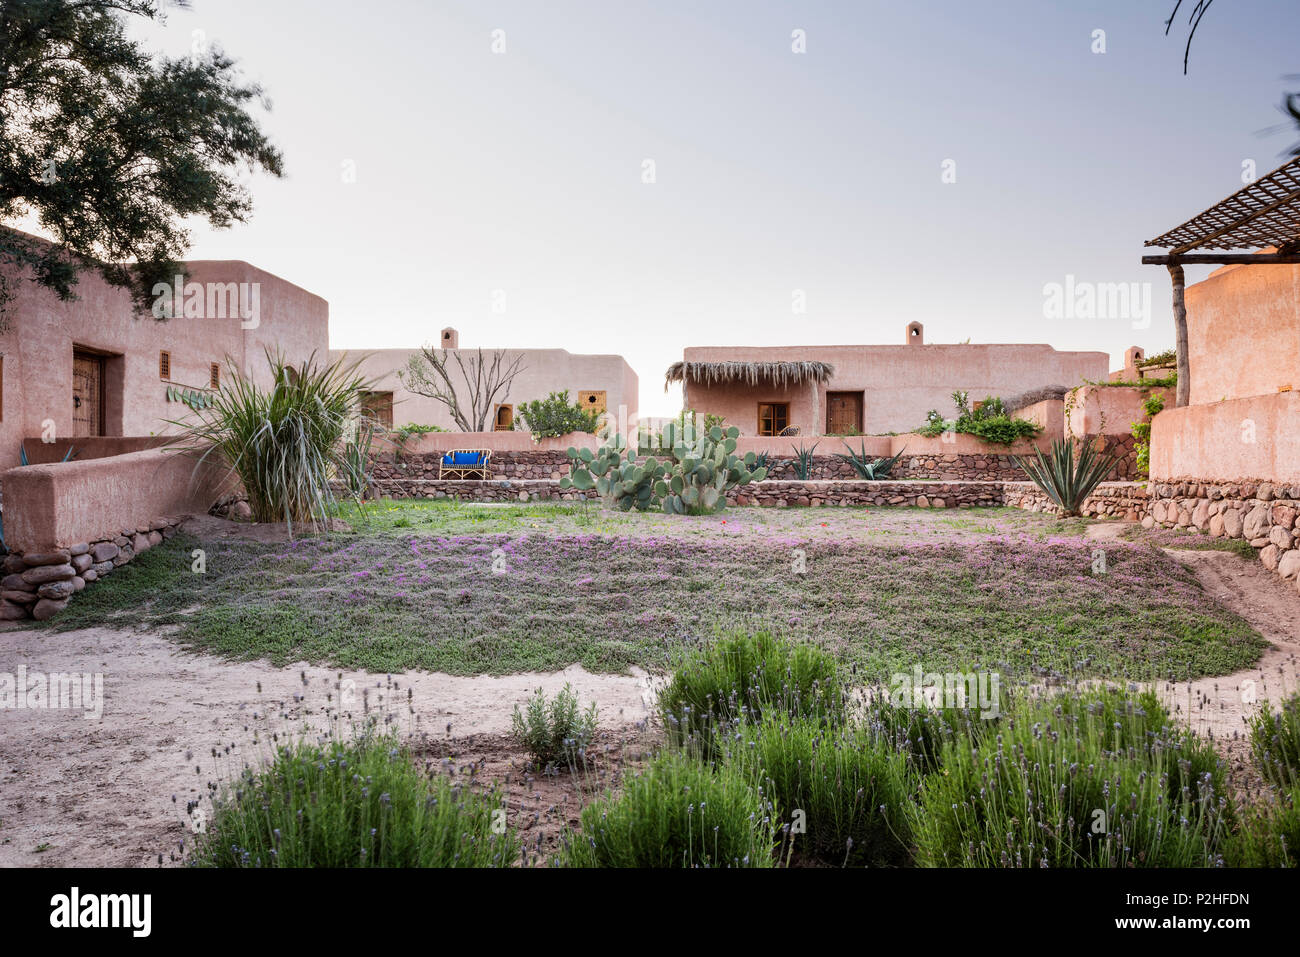 Exterior facade of adobe Berber style lodges with garden of lavender, herbs and moroccan wild plants. Garden design by Arnaud Casaus - Stock Image